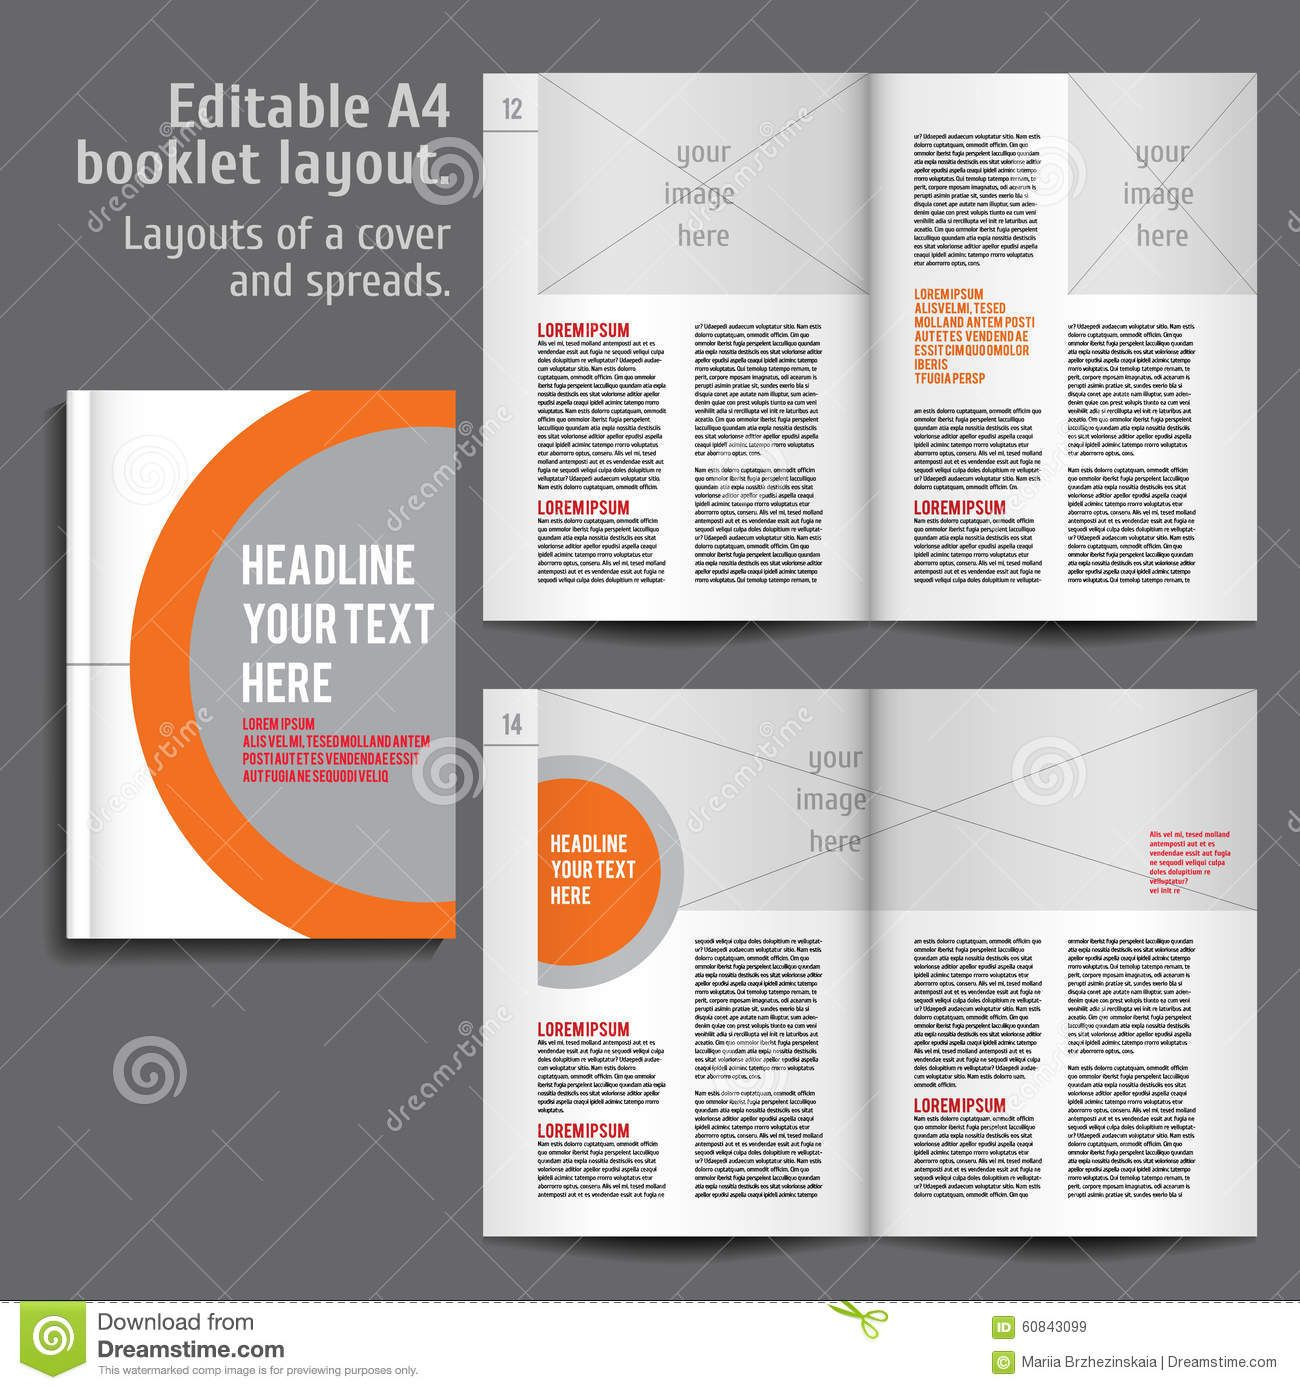 booklet-layout-design-template-cover-spreads-contents-preview ...